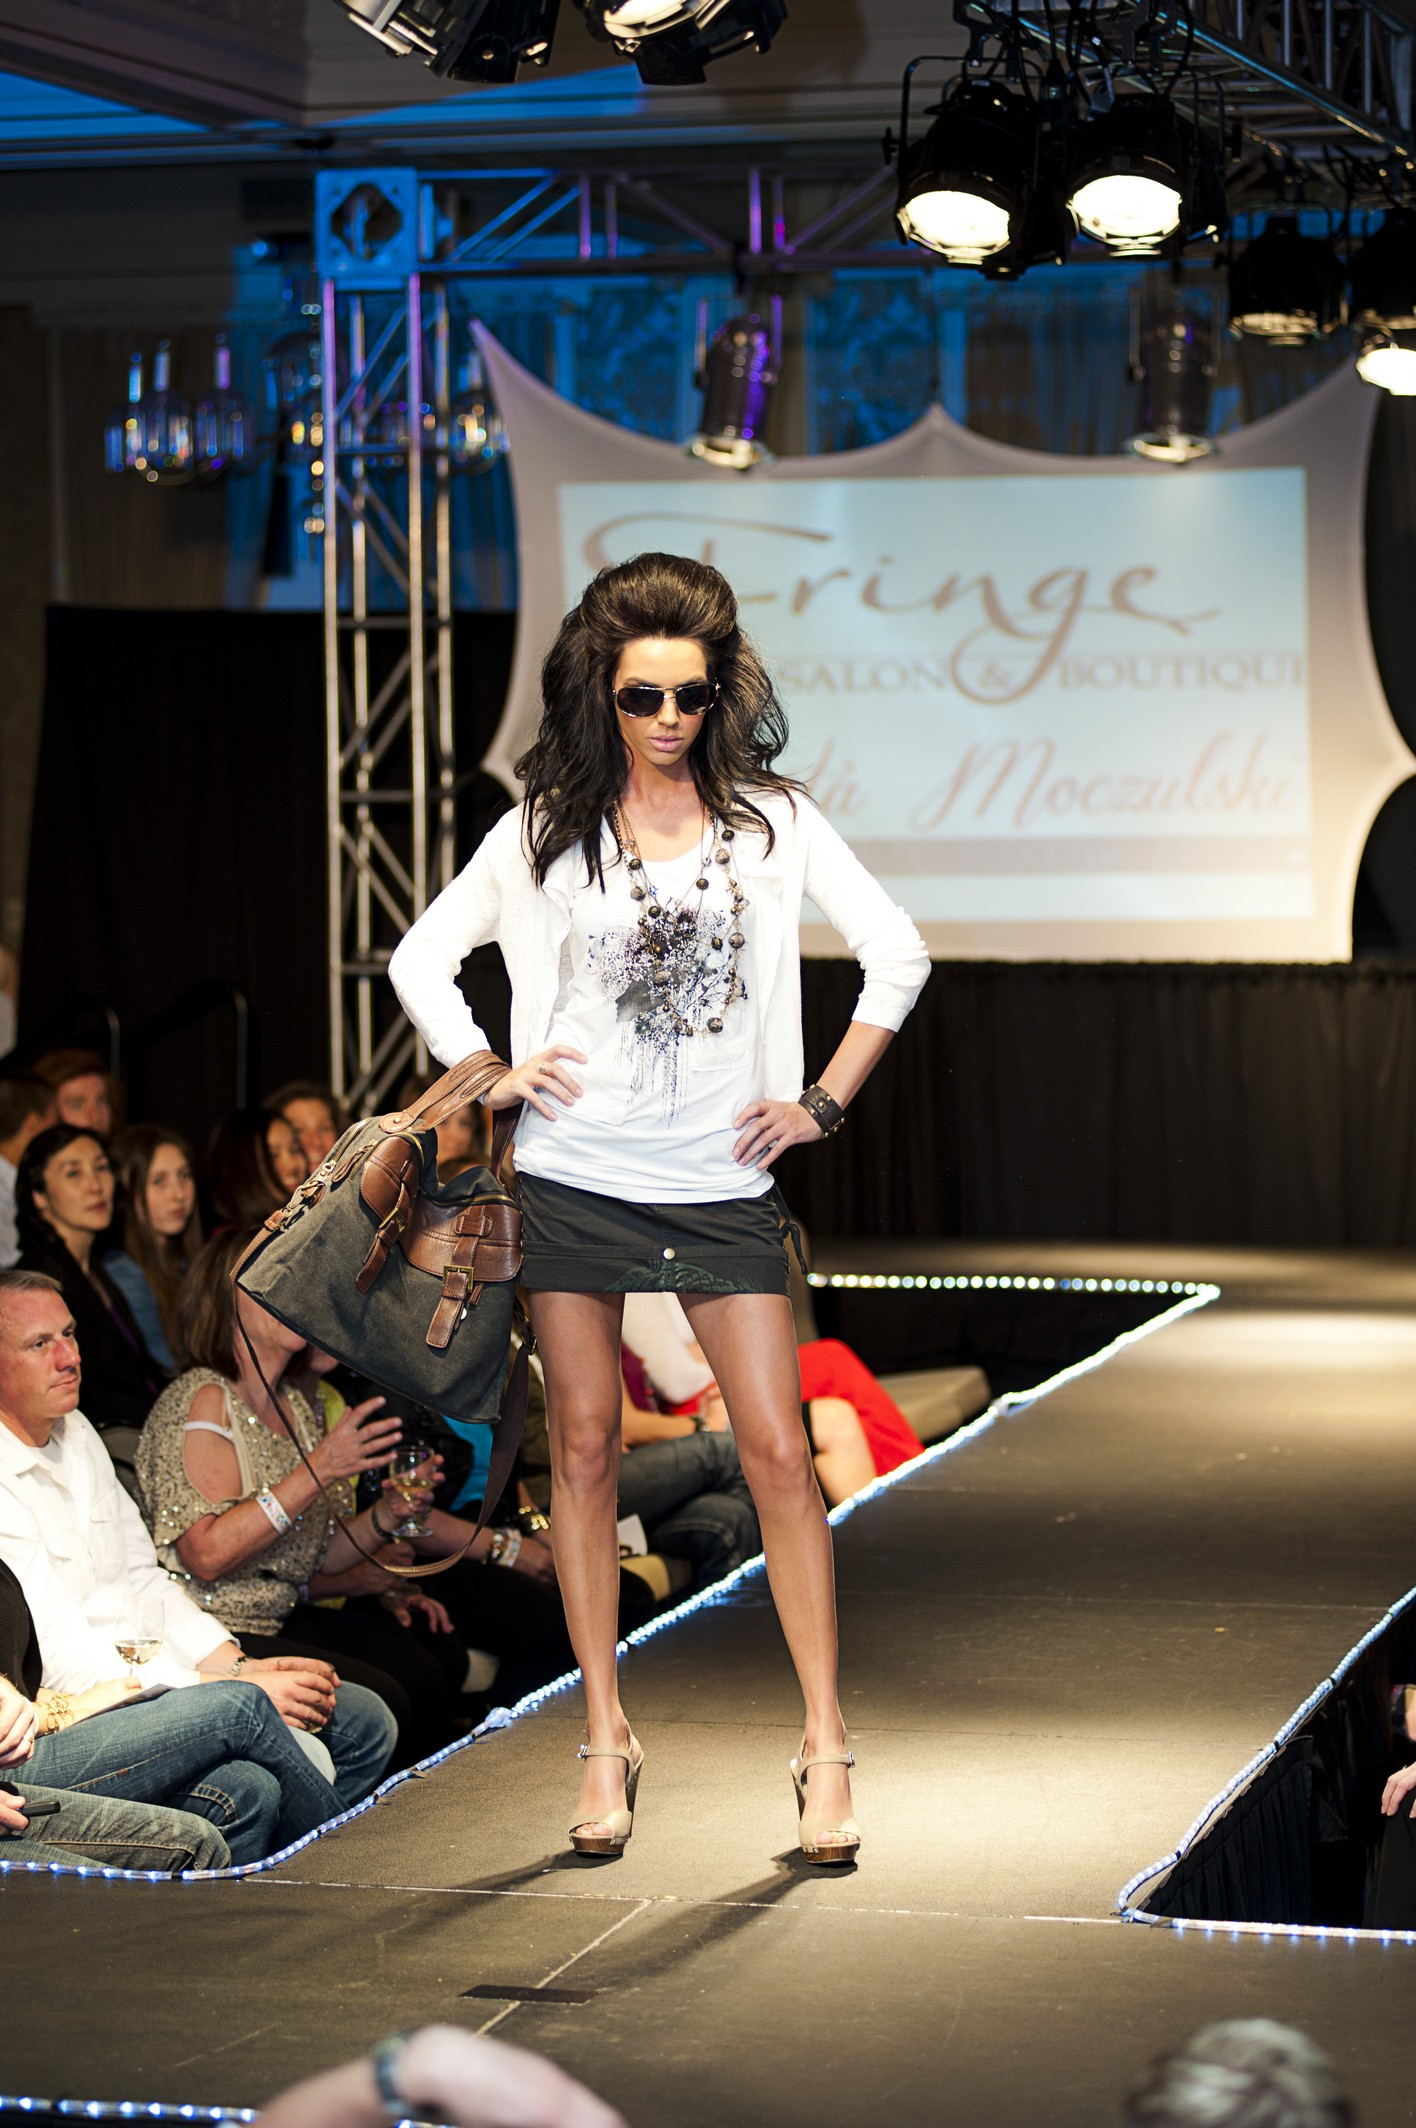 Spokane Fashion Model